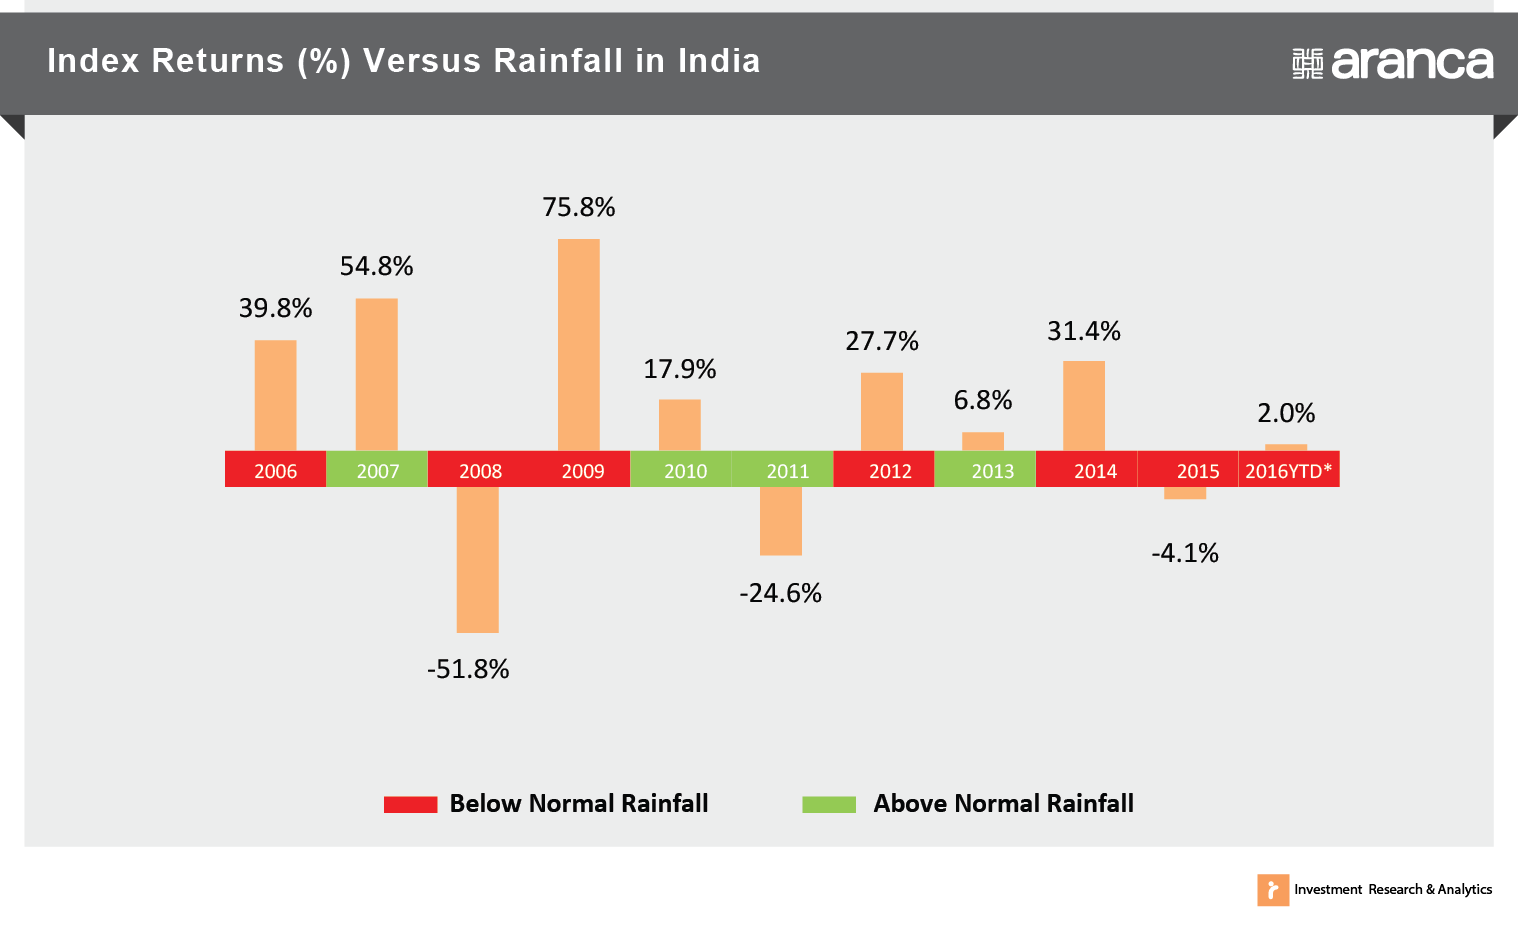 Index Returns versus Rainfall in India